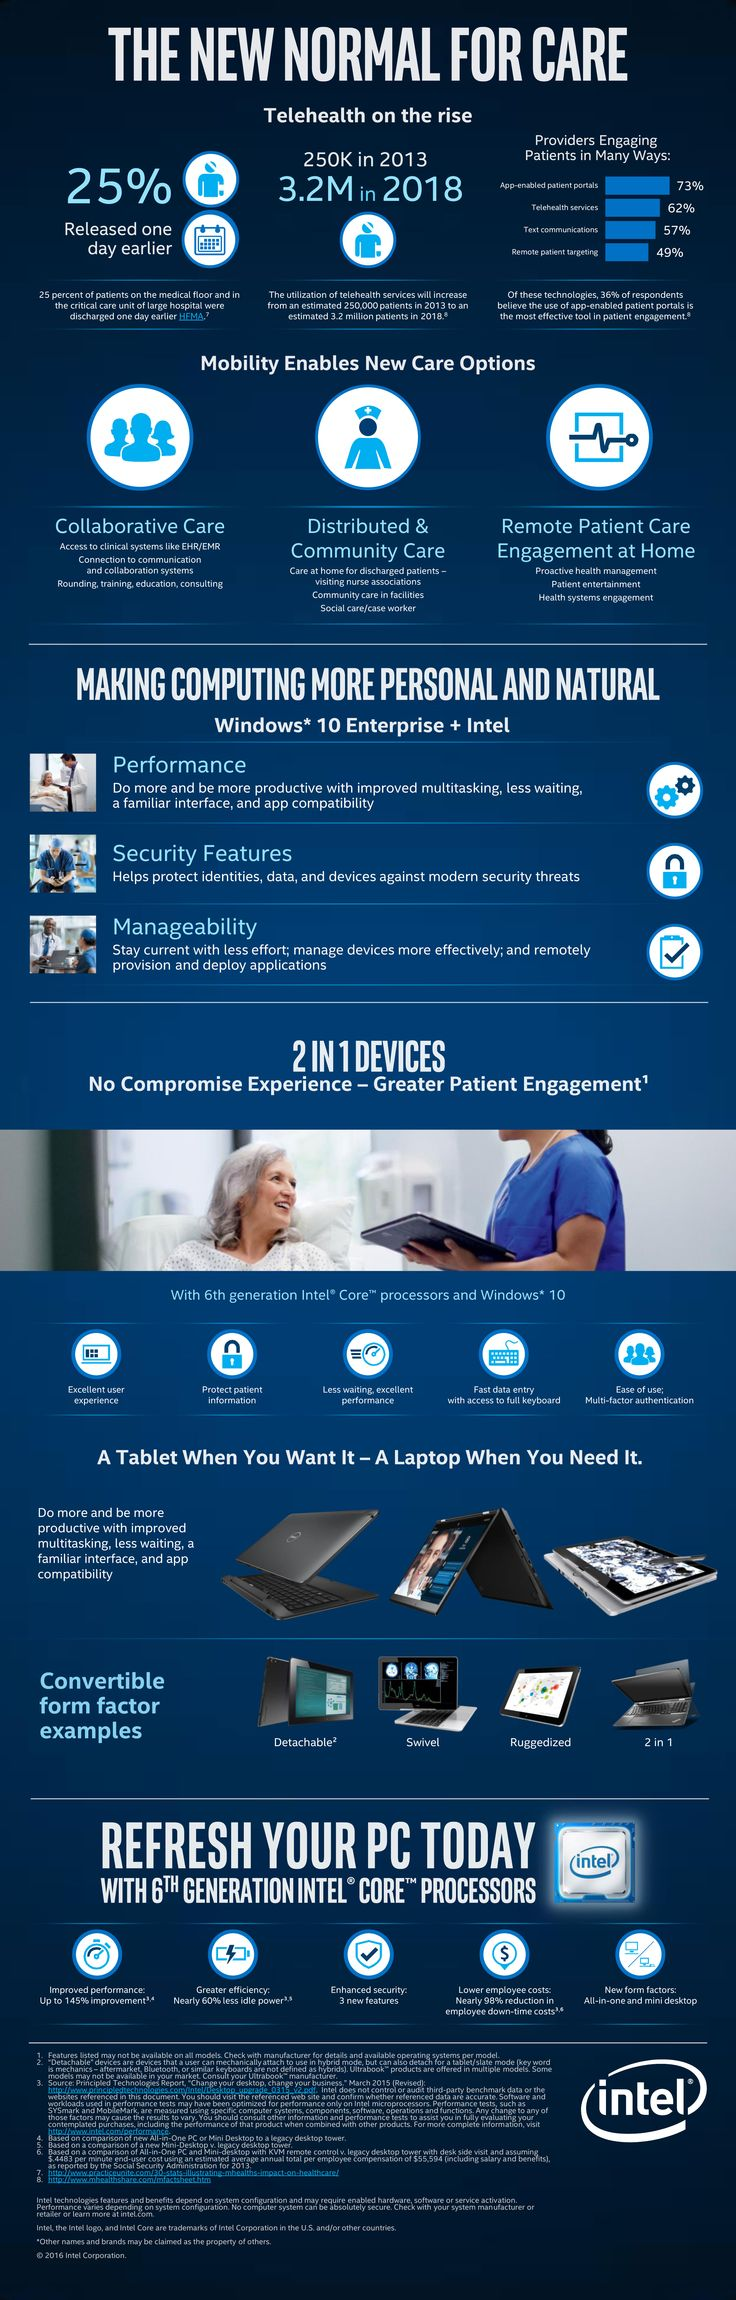 The new normal for #healthcare is #telehealth #telemedicine virtual care. #Healthconsumers seek convenience, access & < #healthcosts